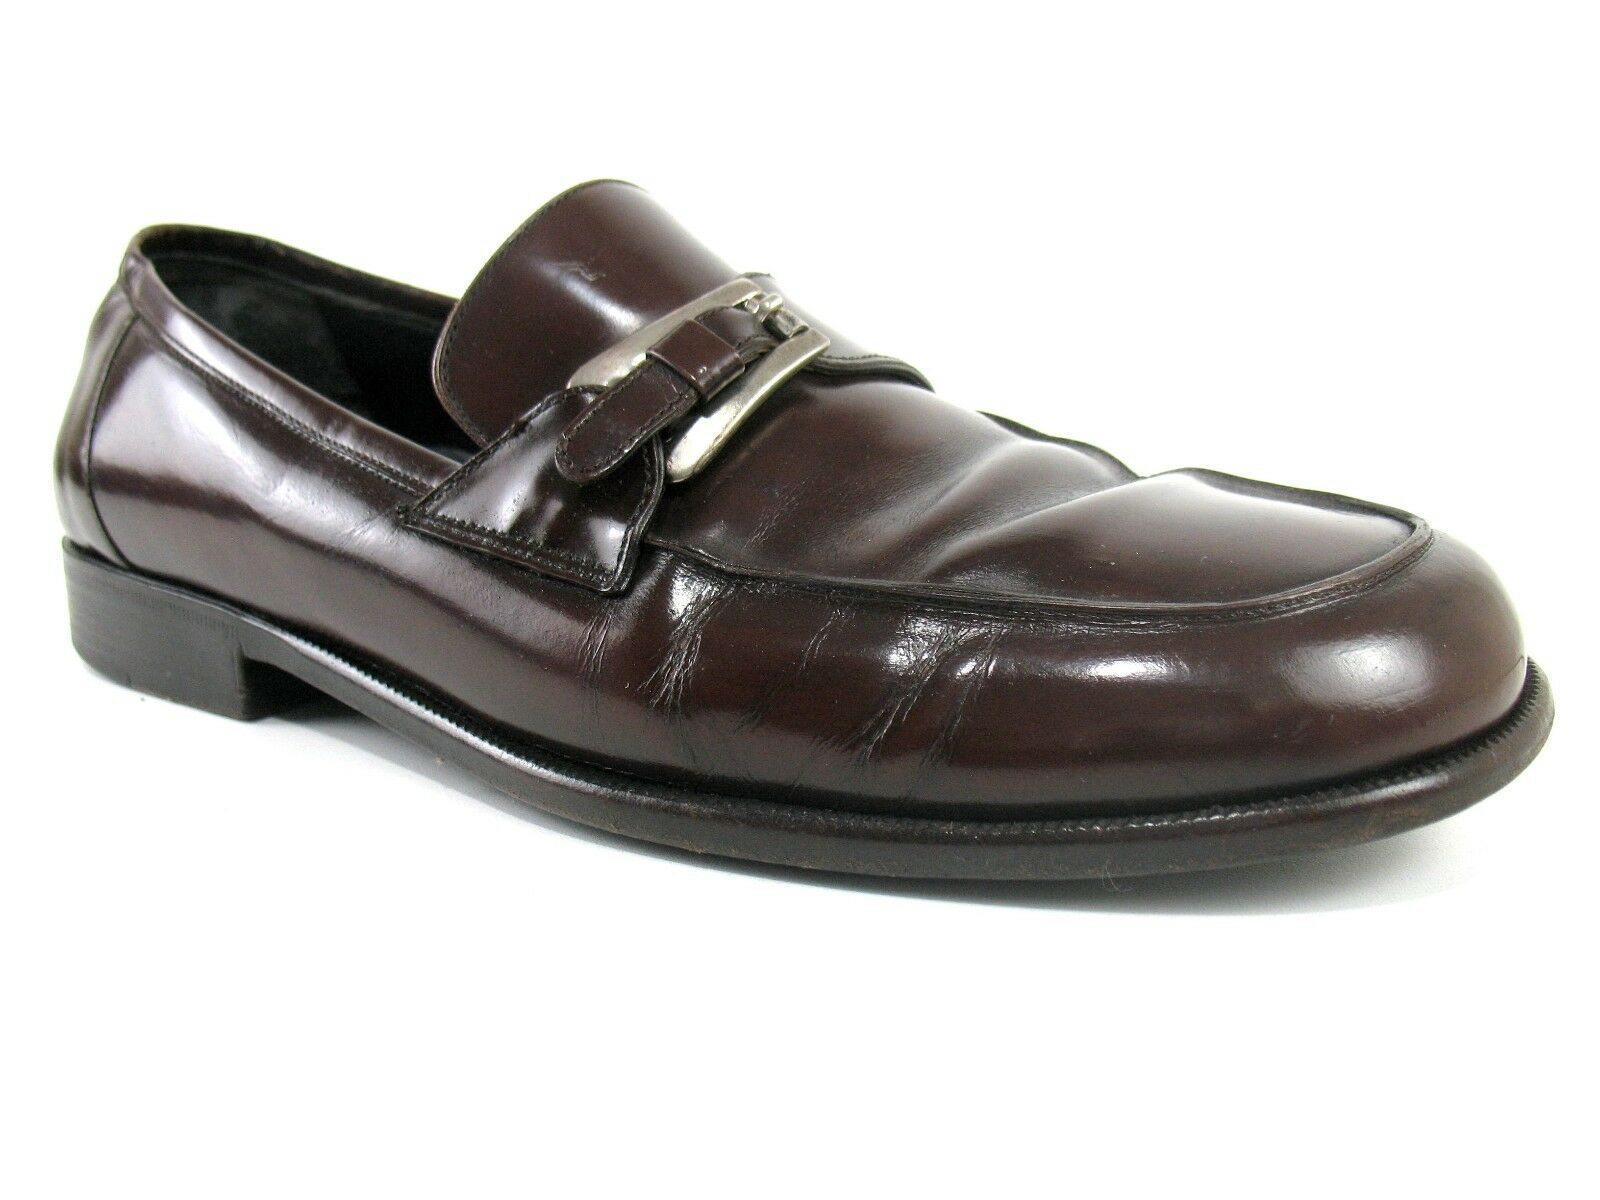 Bragano By Cole Haan - Brown Pelle Monk Strap Loafer Dress Shoes - Size 10 D